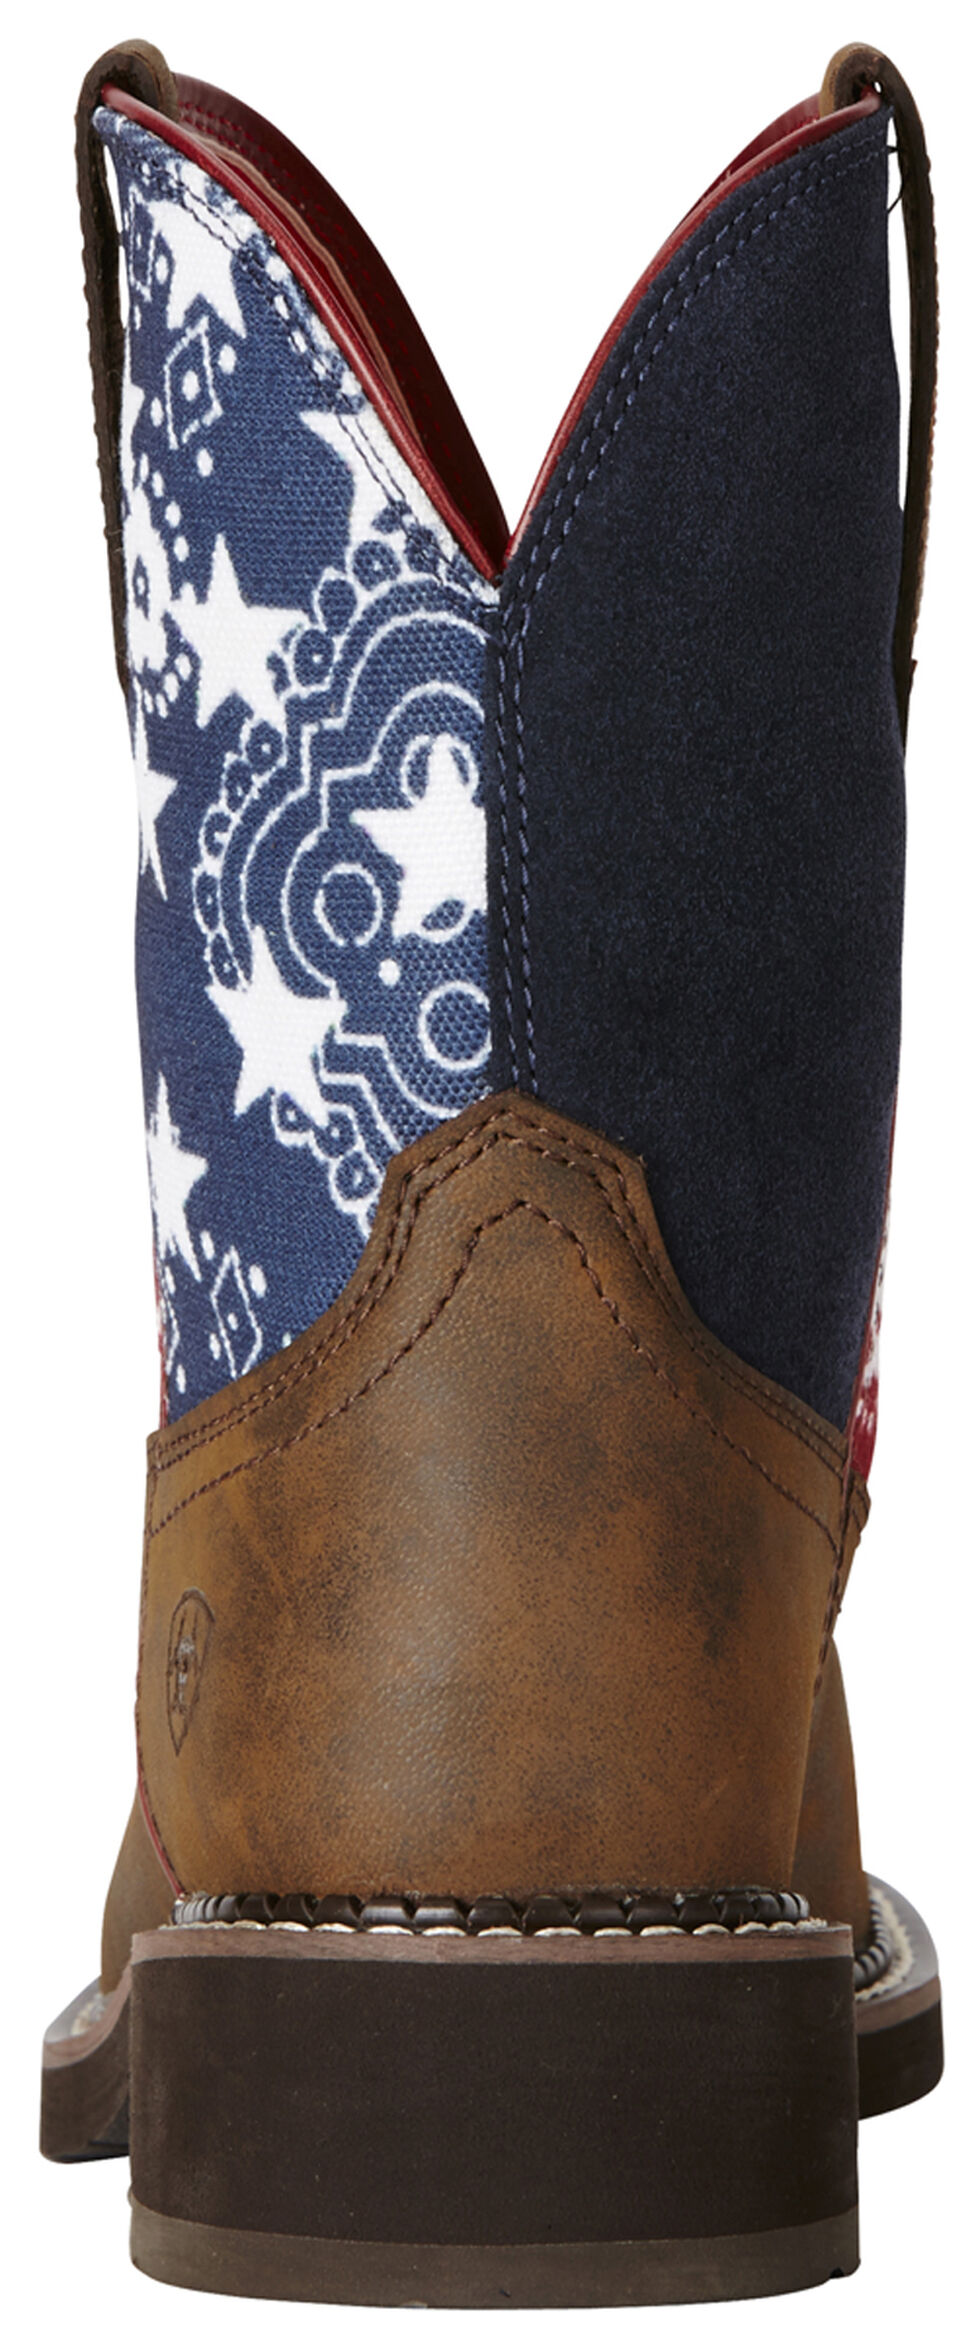 Ariat Fatbaby Patriot Brown Heritage Cowgirl Boots - Round Toe, Brown, hi-res